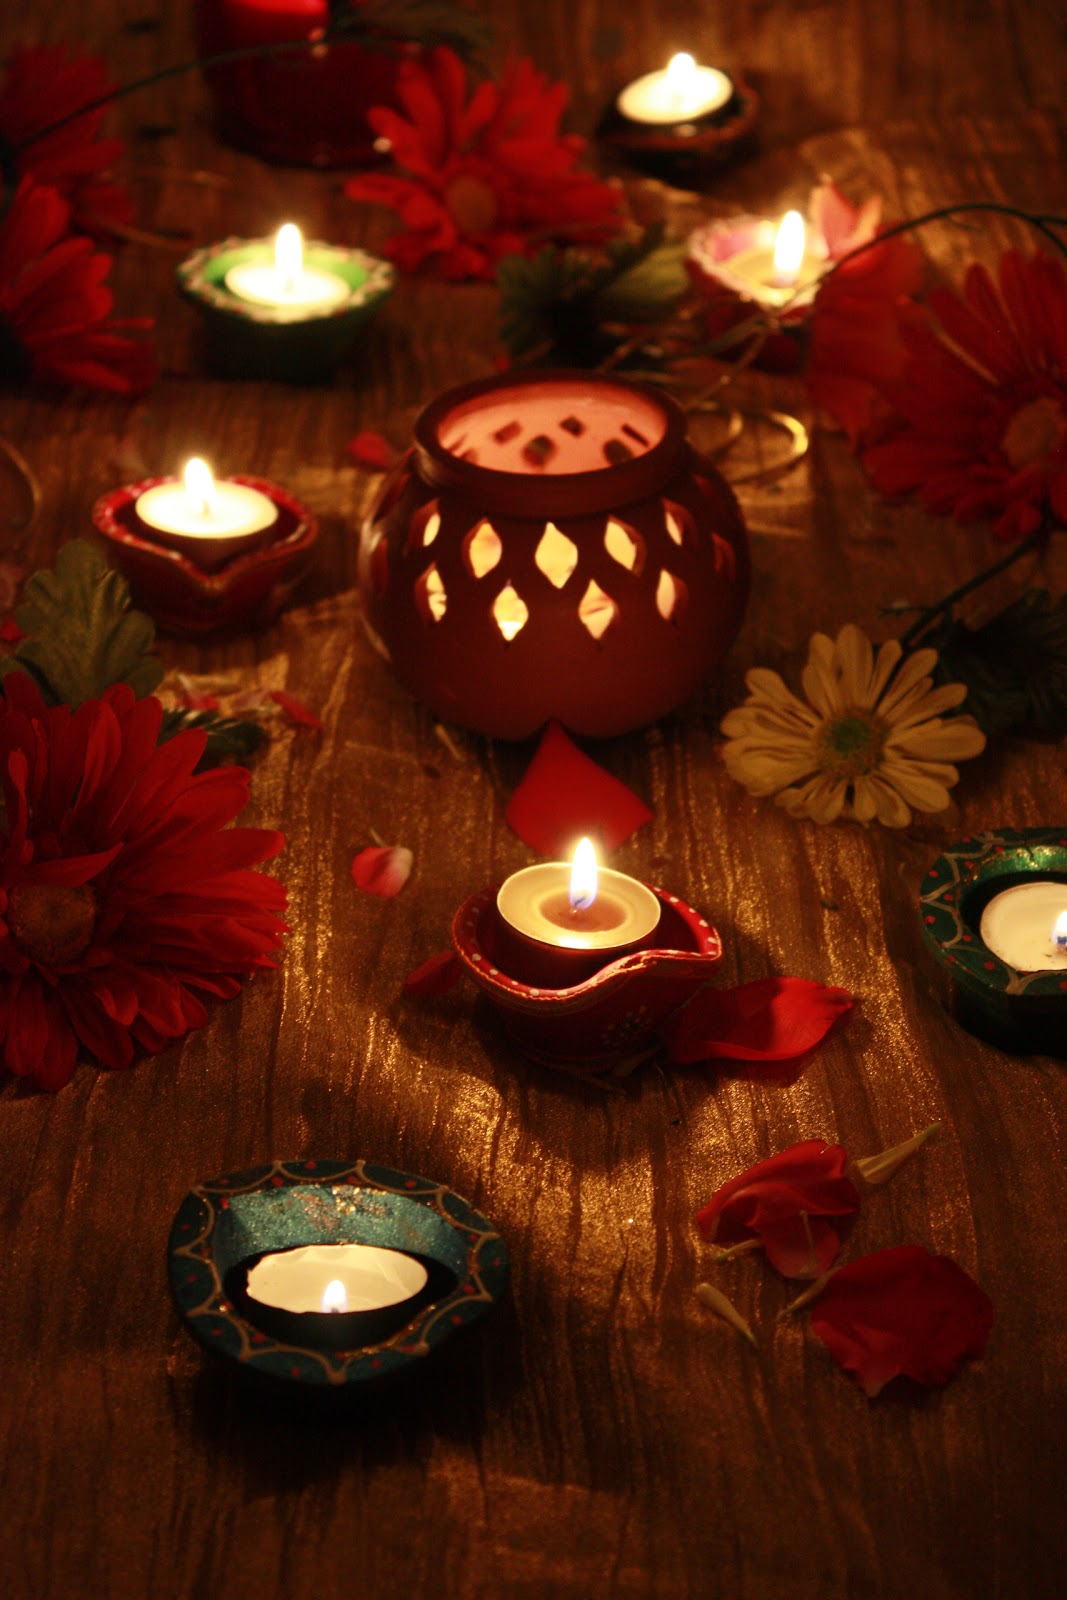 Diwali decoration ideas decorating ideas for Home decorations ideas for diwali